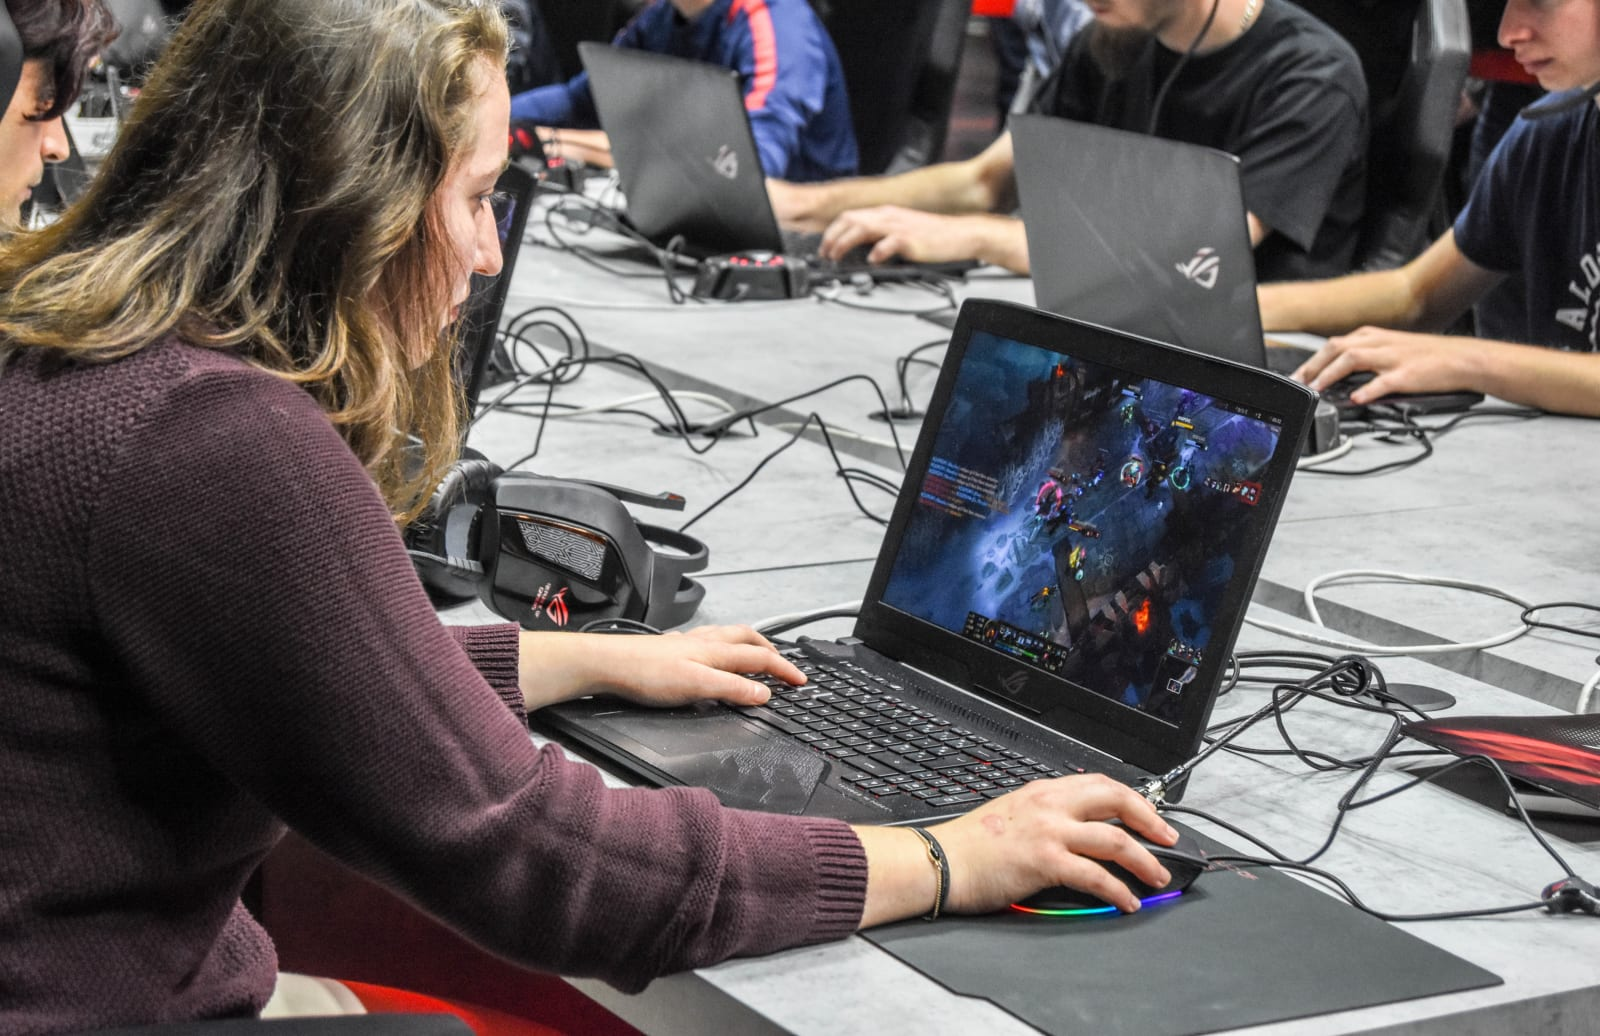 A female participants seen playing online game on a laptop...